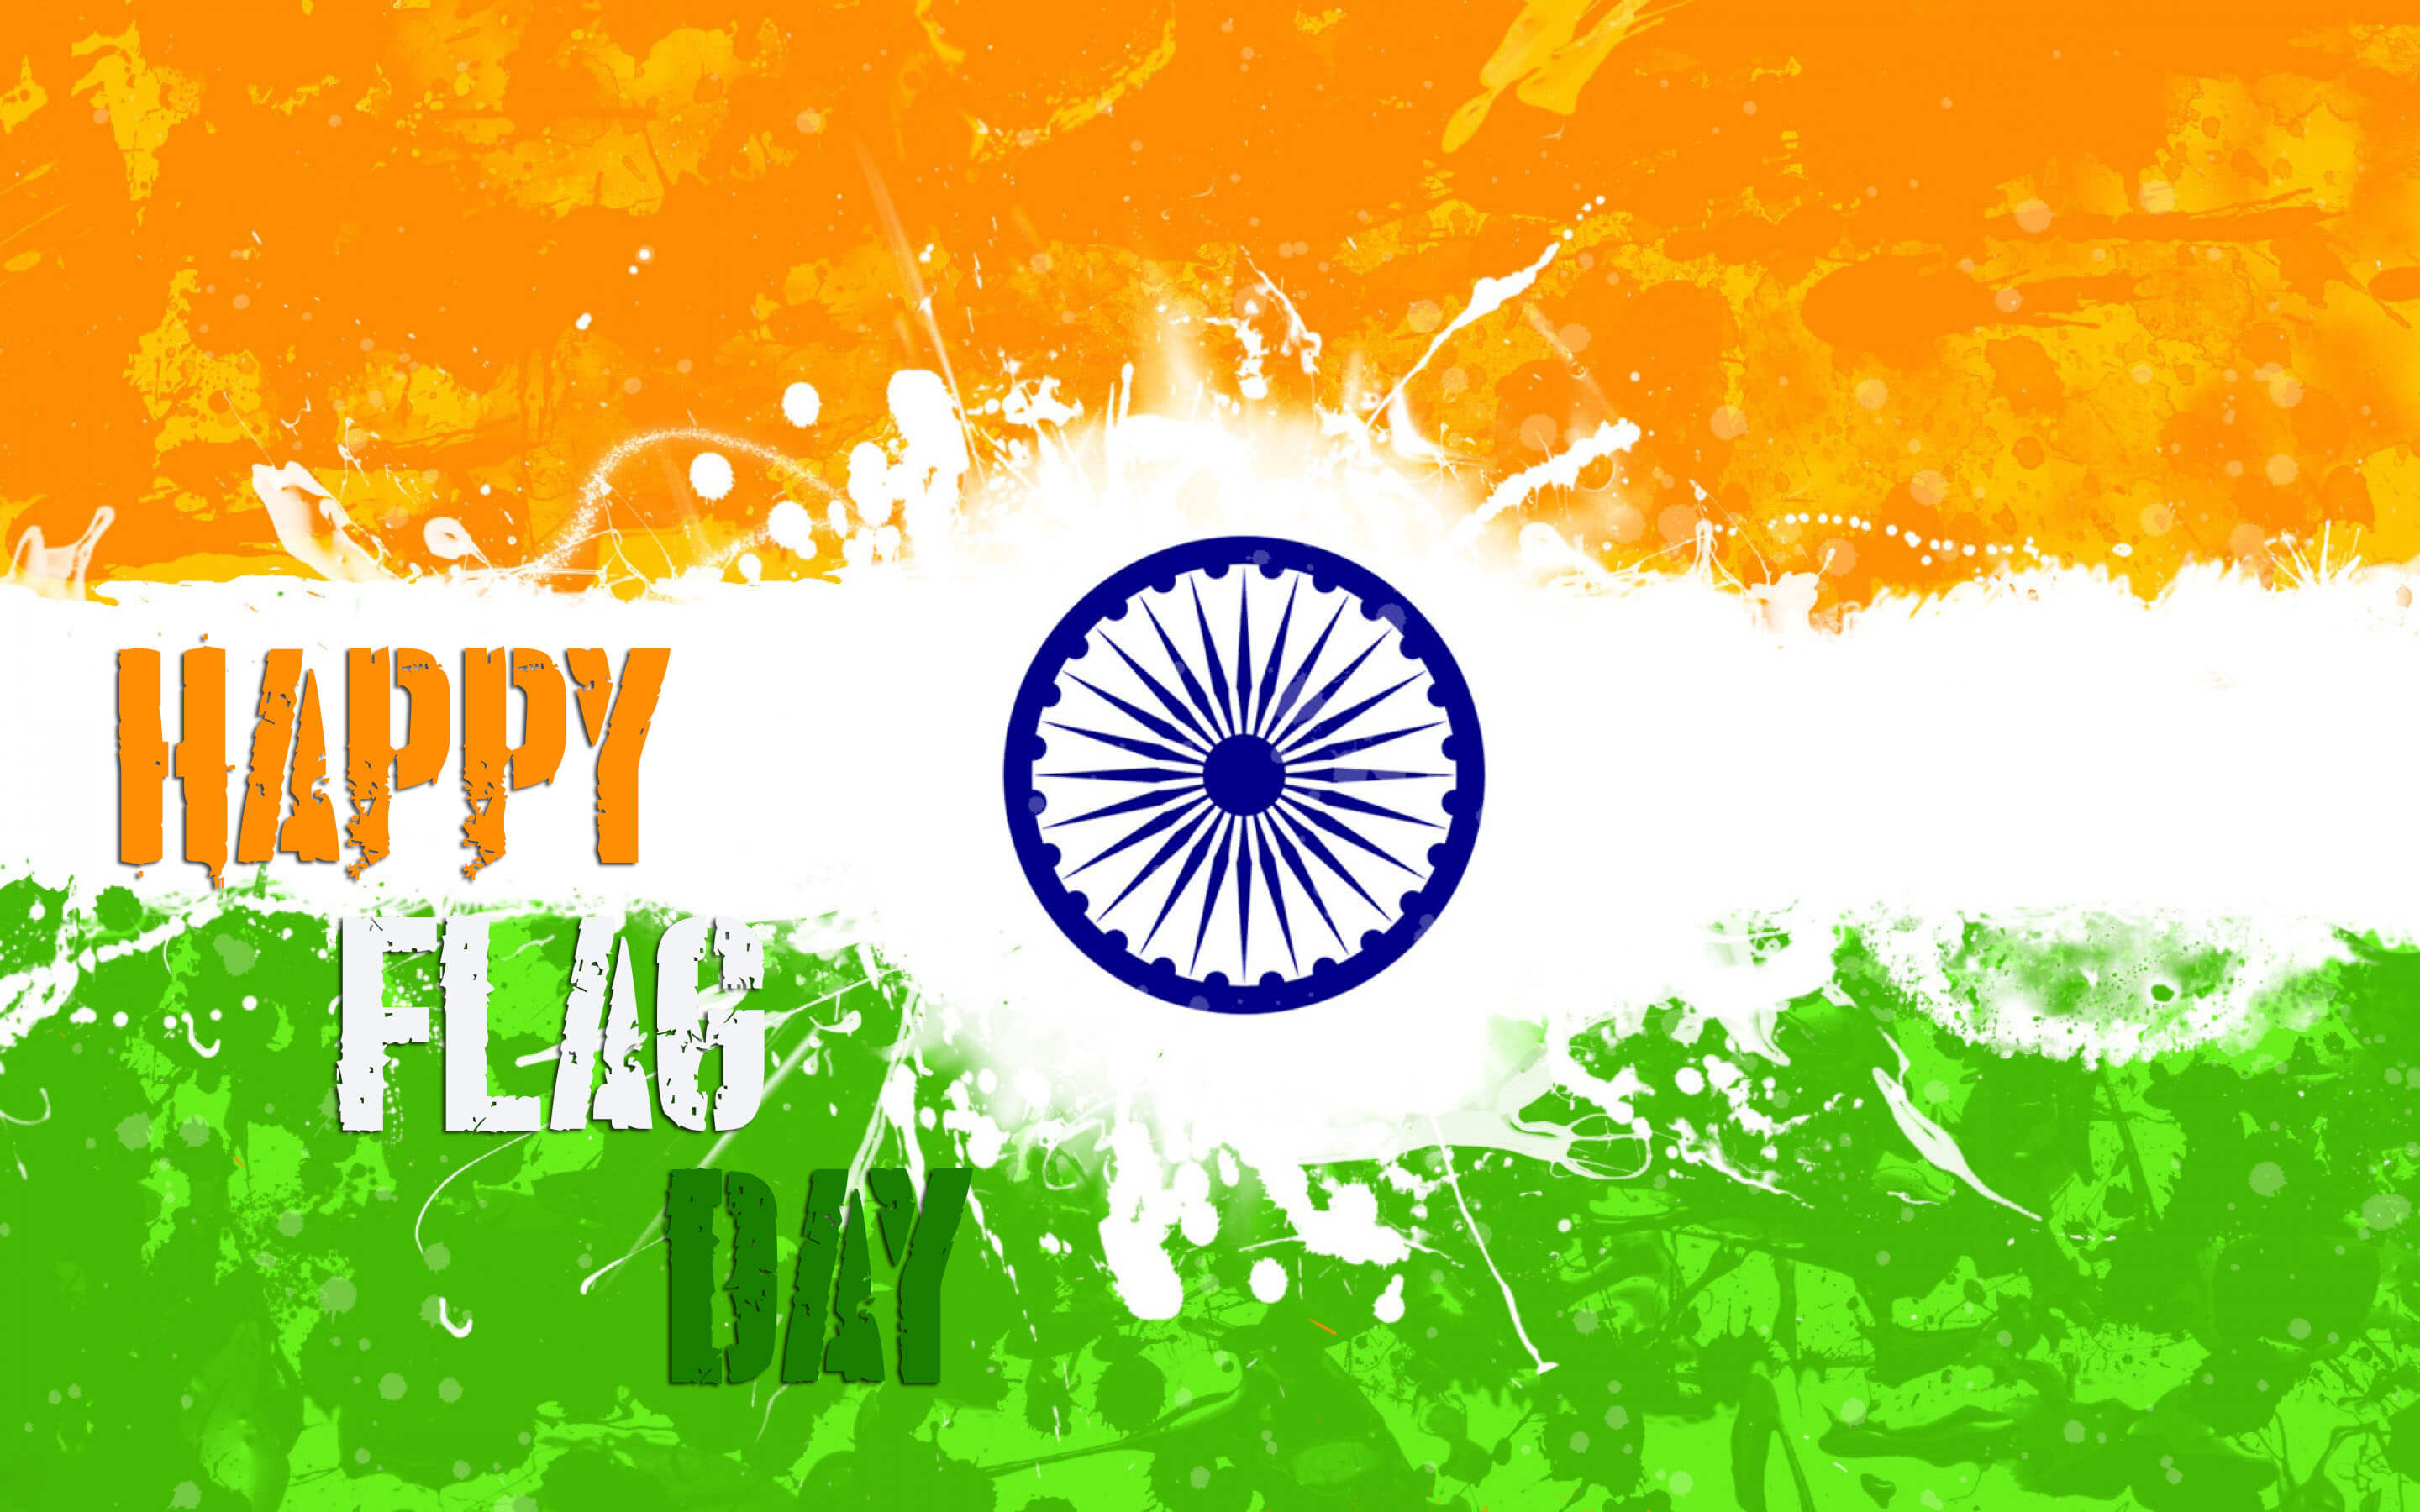 happy flag day india hd background wallpaper